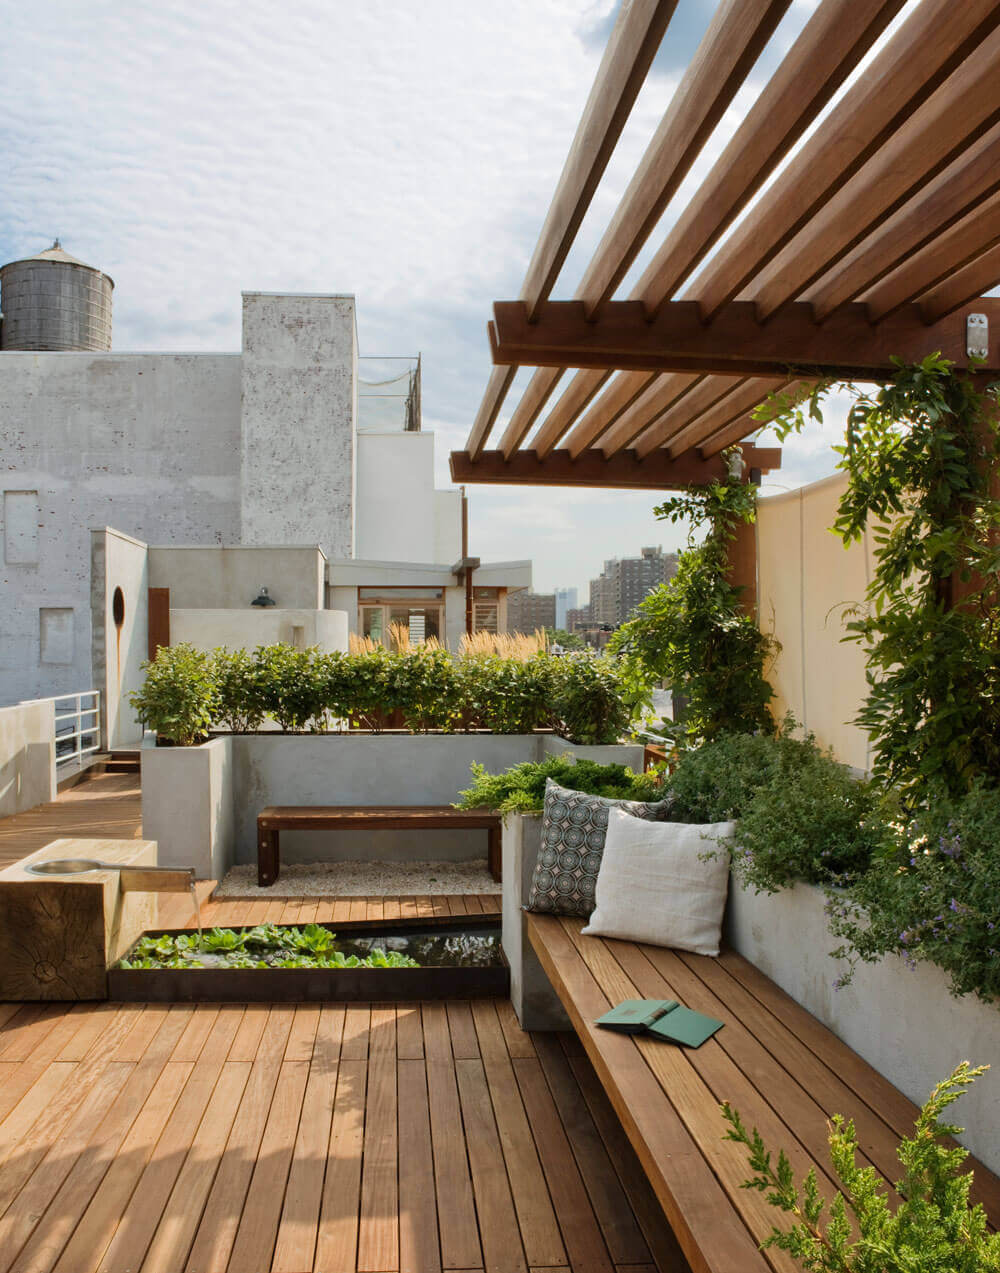 Patio with Built-In Planters and Benches